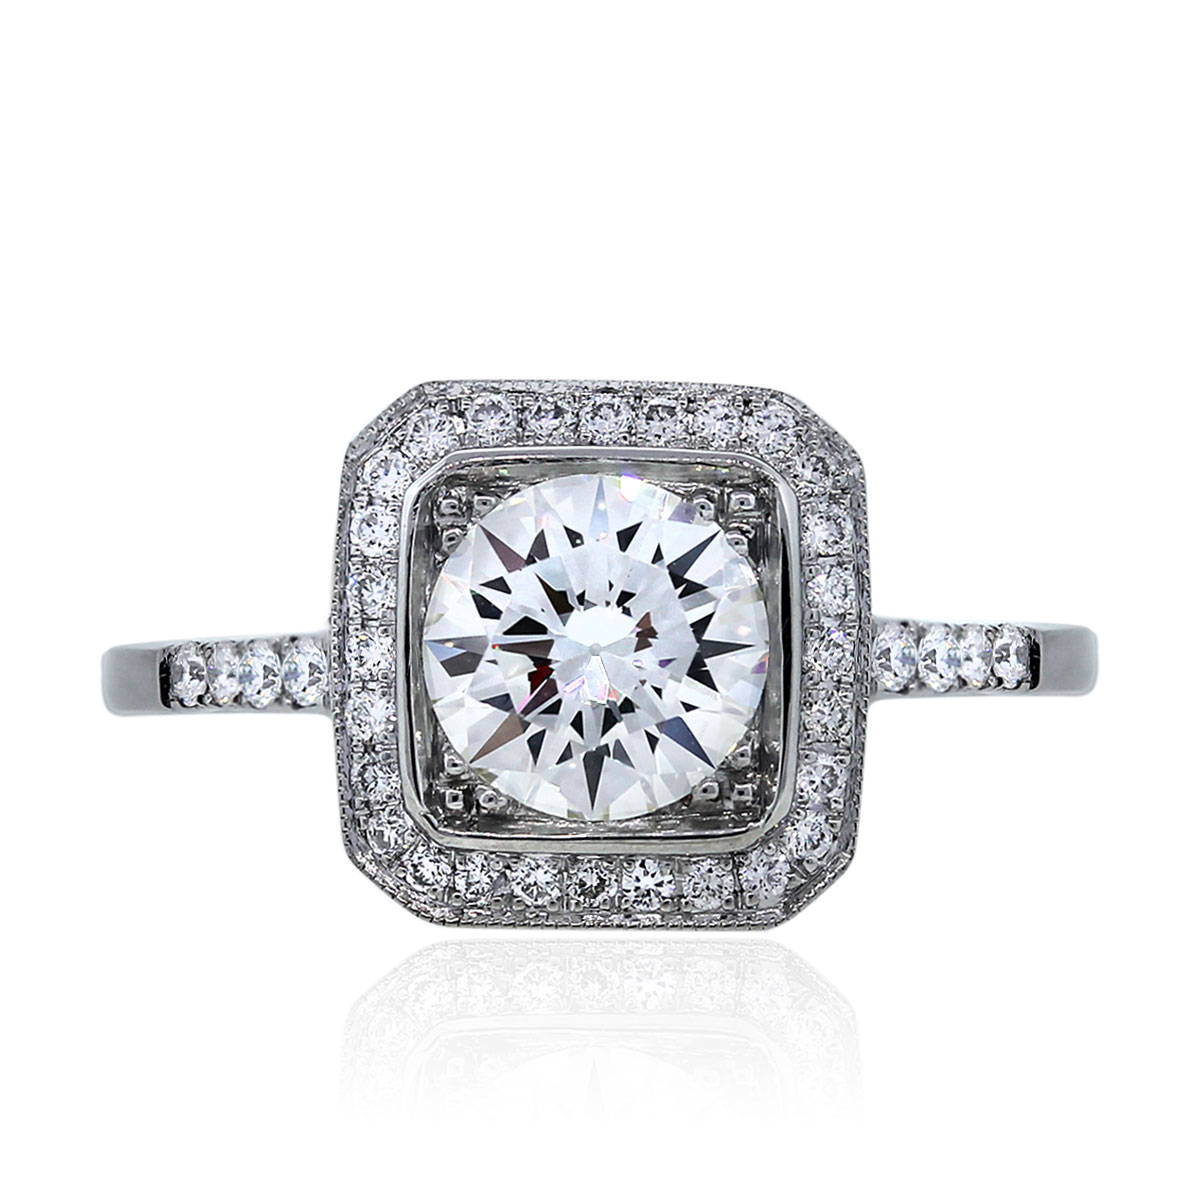 Pave Set Round Brilliant Diamond Ring